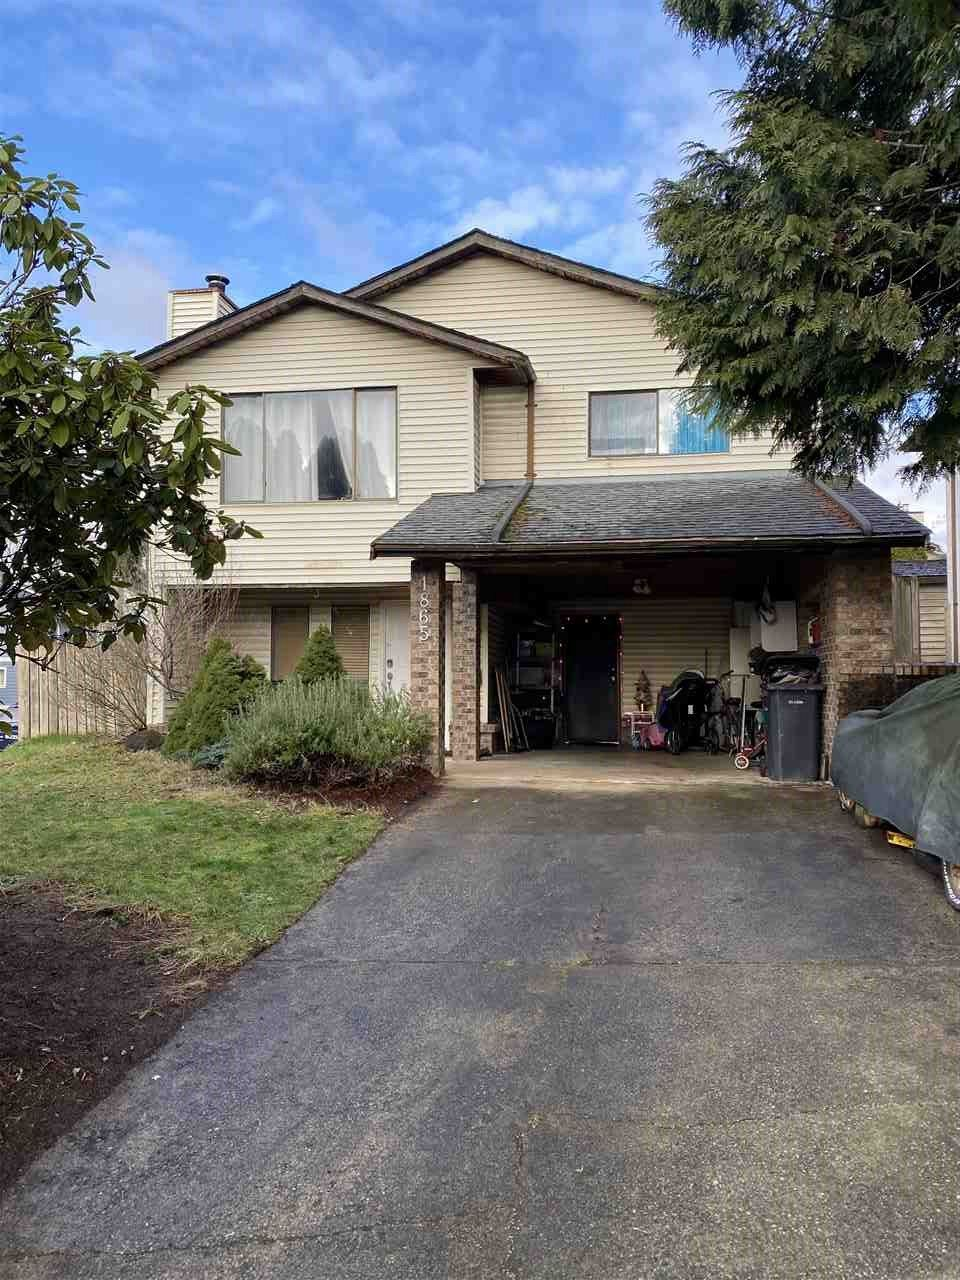 """Main Photo: 1865 HILLSIDE Avenue in Coquitlam: Cape Horn House for sale in """"CAPE HORN"""" : MLS®# R2532752"""